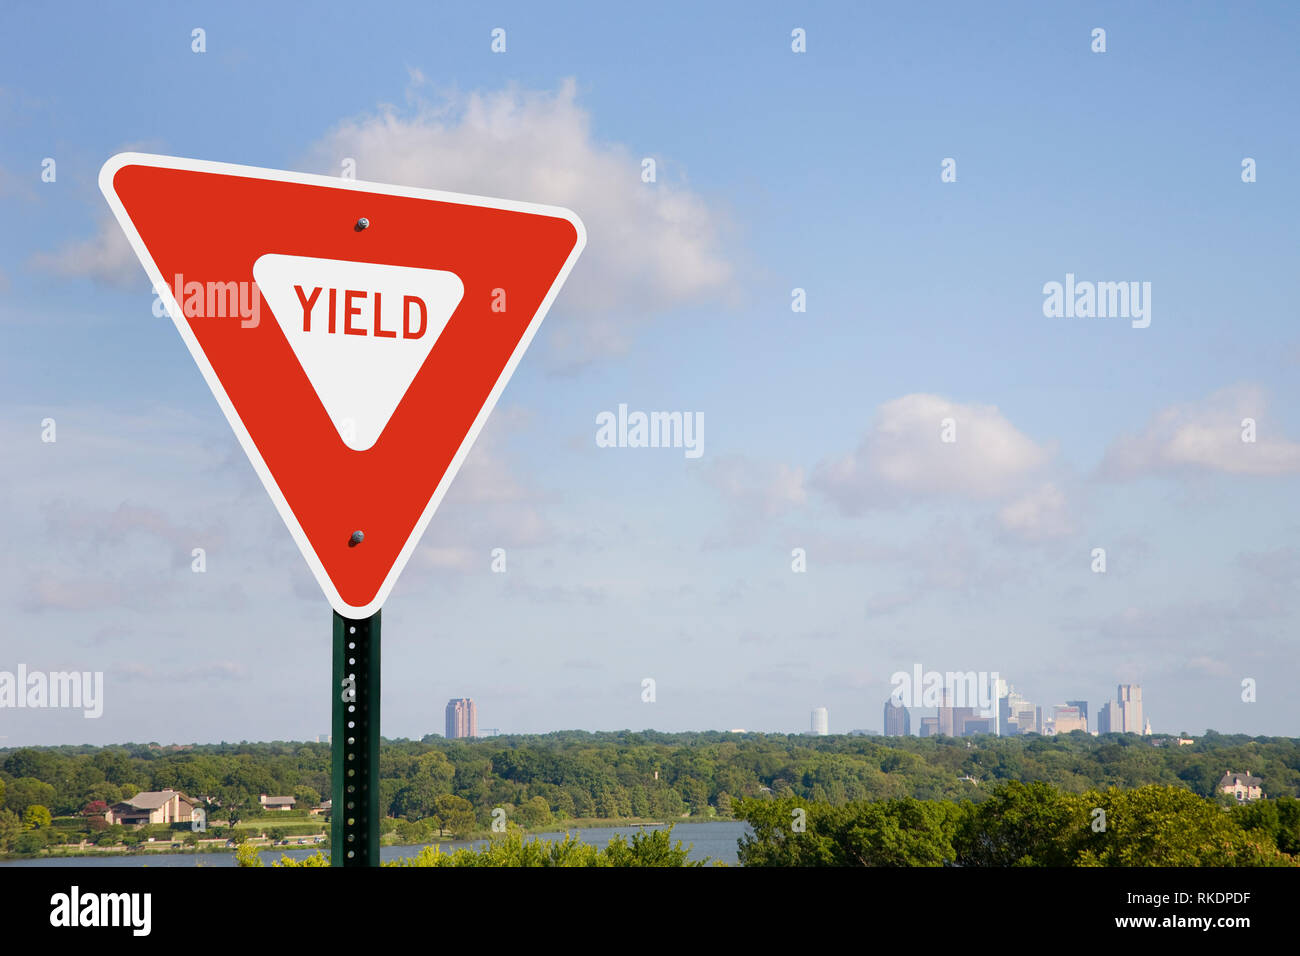 Yield Sign And City Skyline - Stock Image